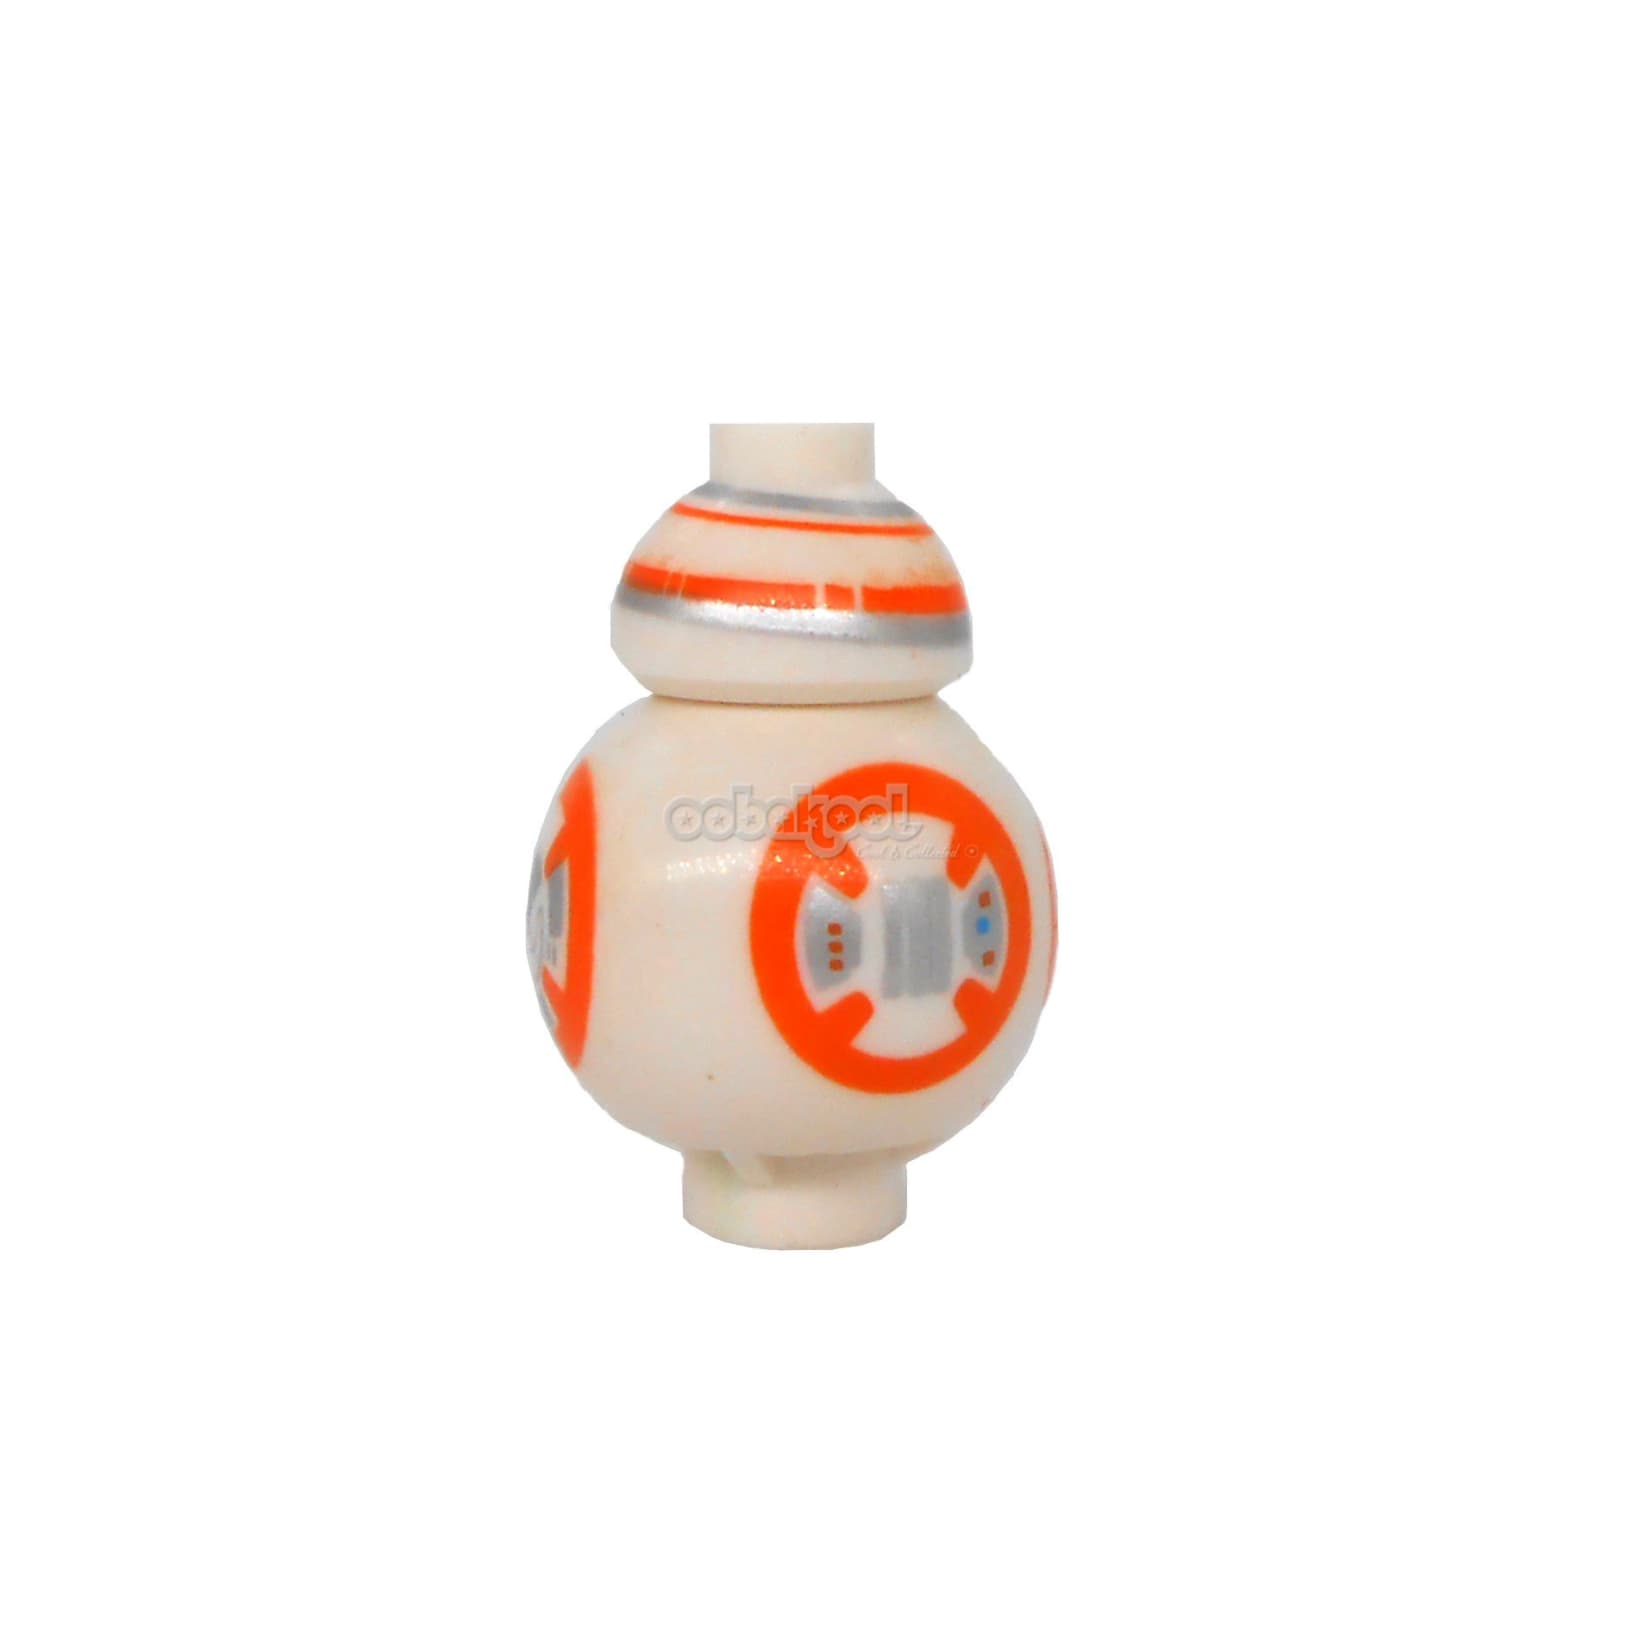 Star Wars / Bb-8 Droid Oobakool Minifigure